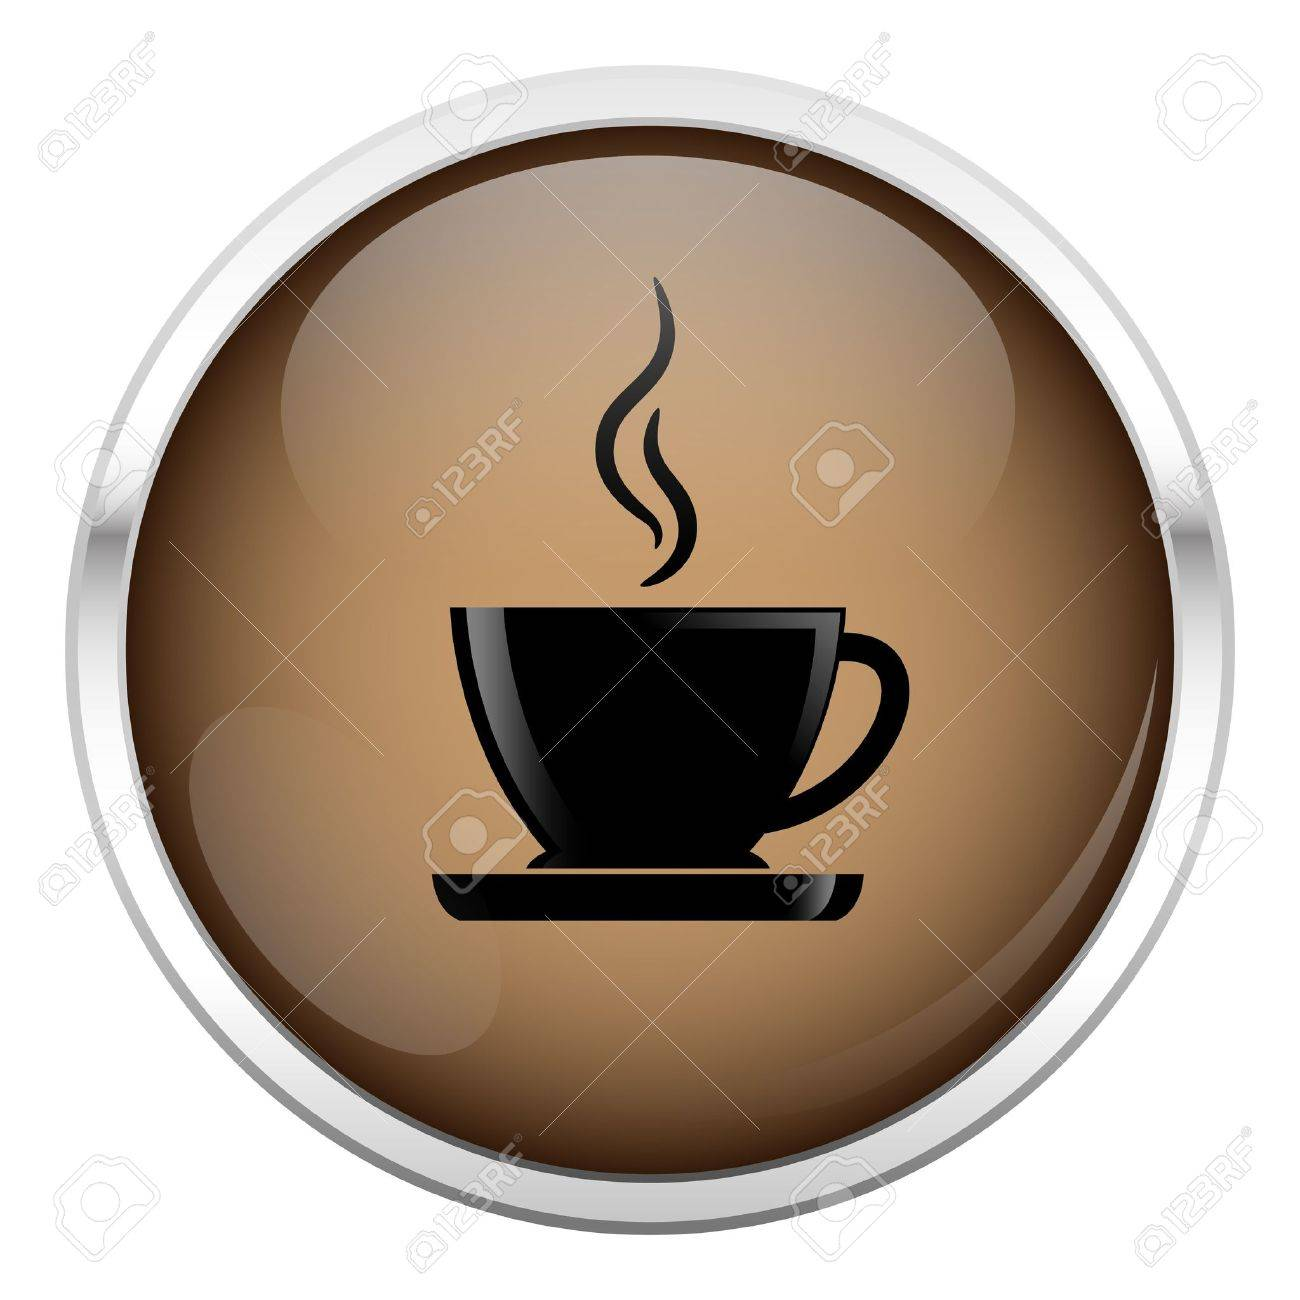 Brown coffee icon Stock Vector - 16974049